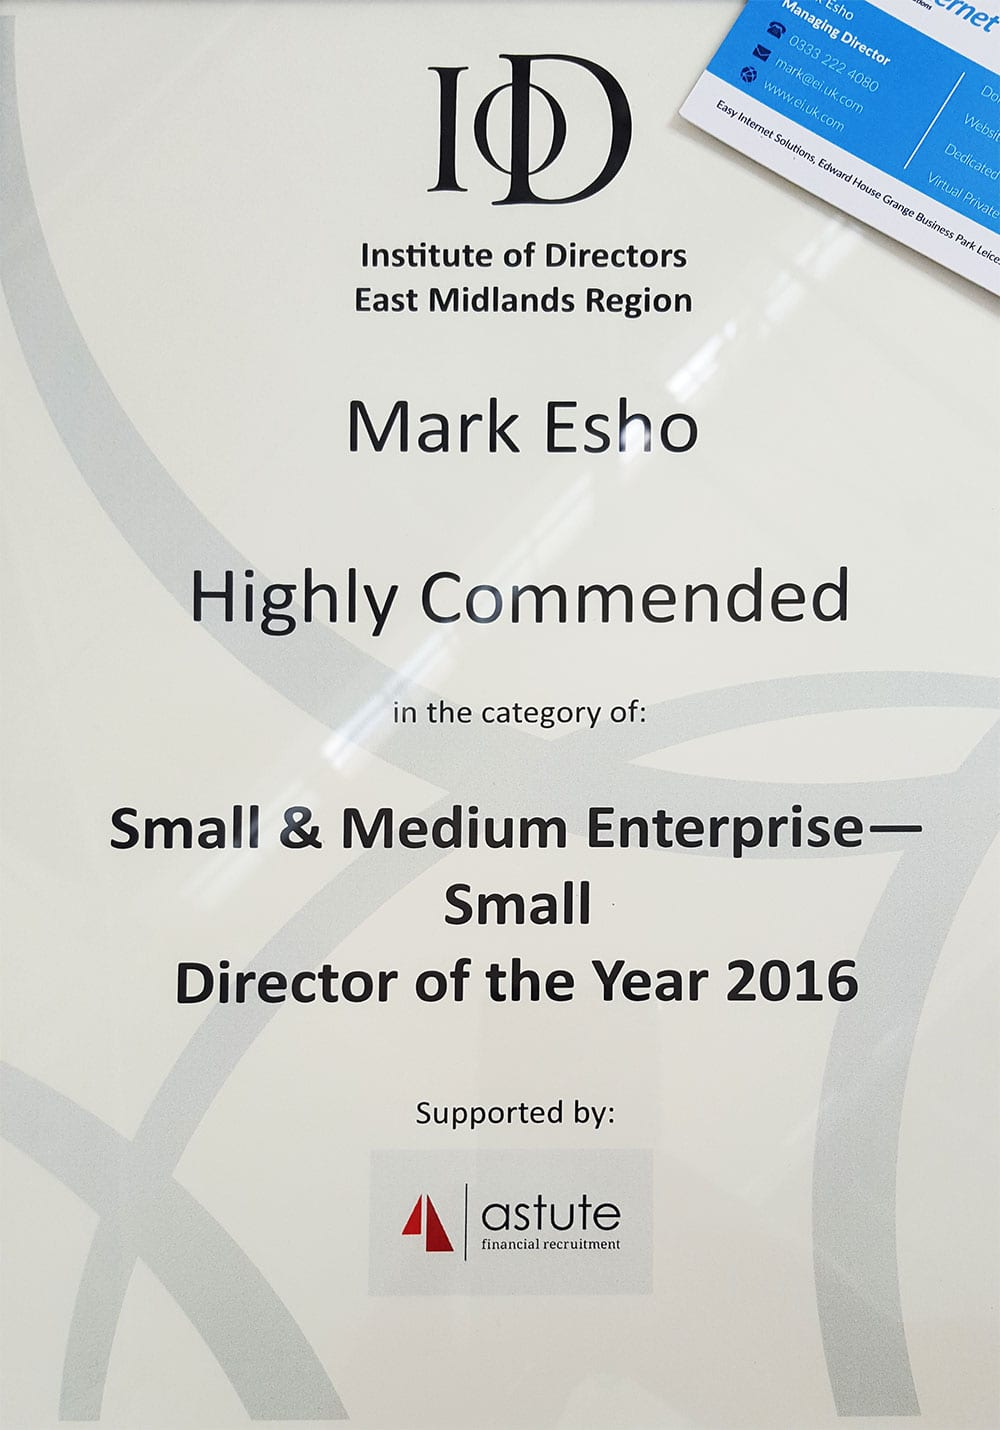 East Midlands Awards 2016 - Highly Commended: Mark Esho